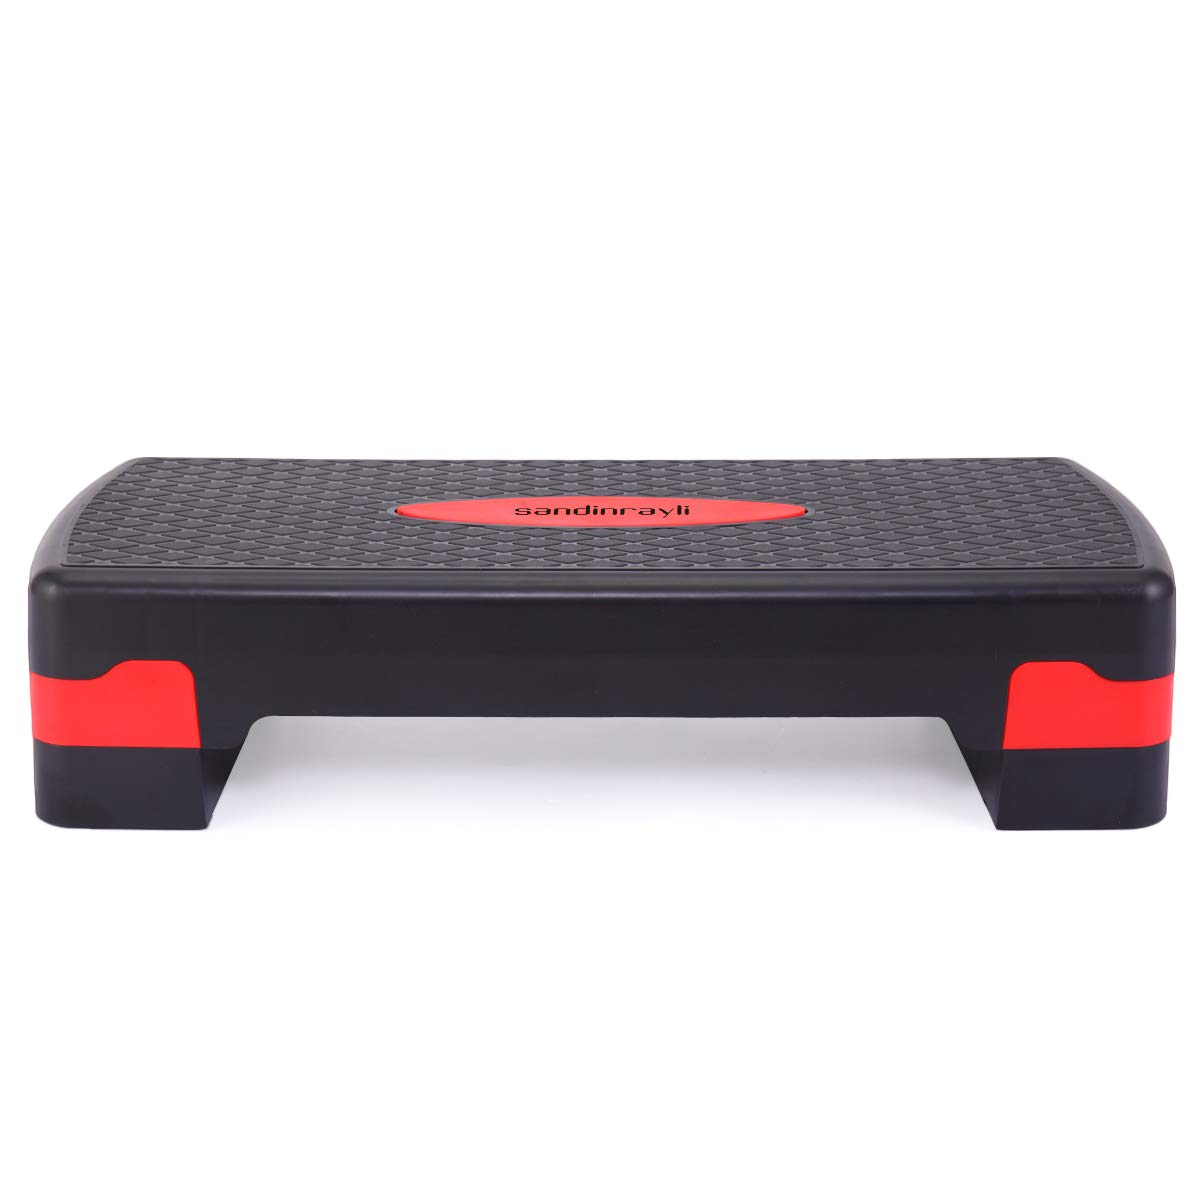 Tobbi Adjustable Aerobic Stepper Fitness Platform Yoga Exercise in Black & Red by Tobbi